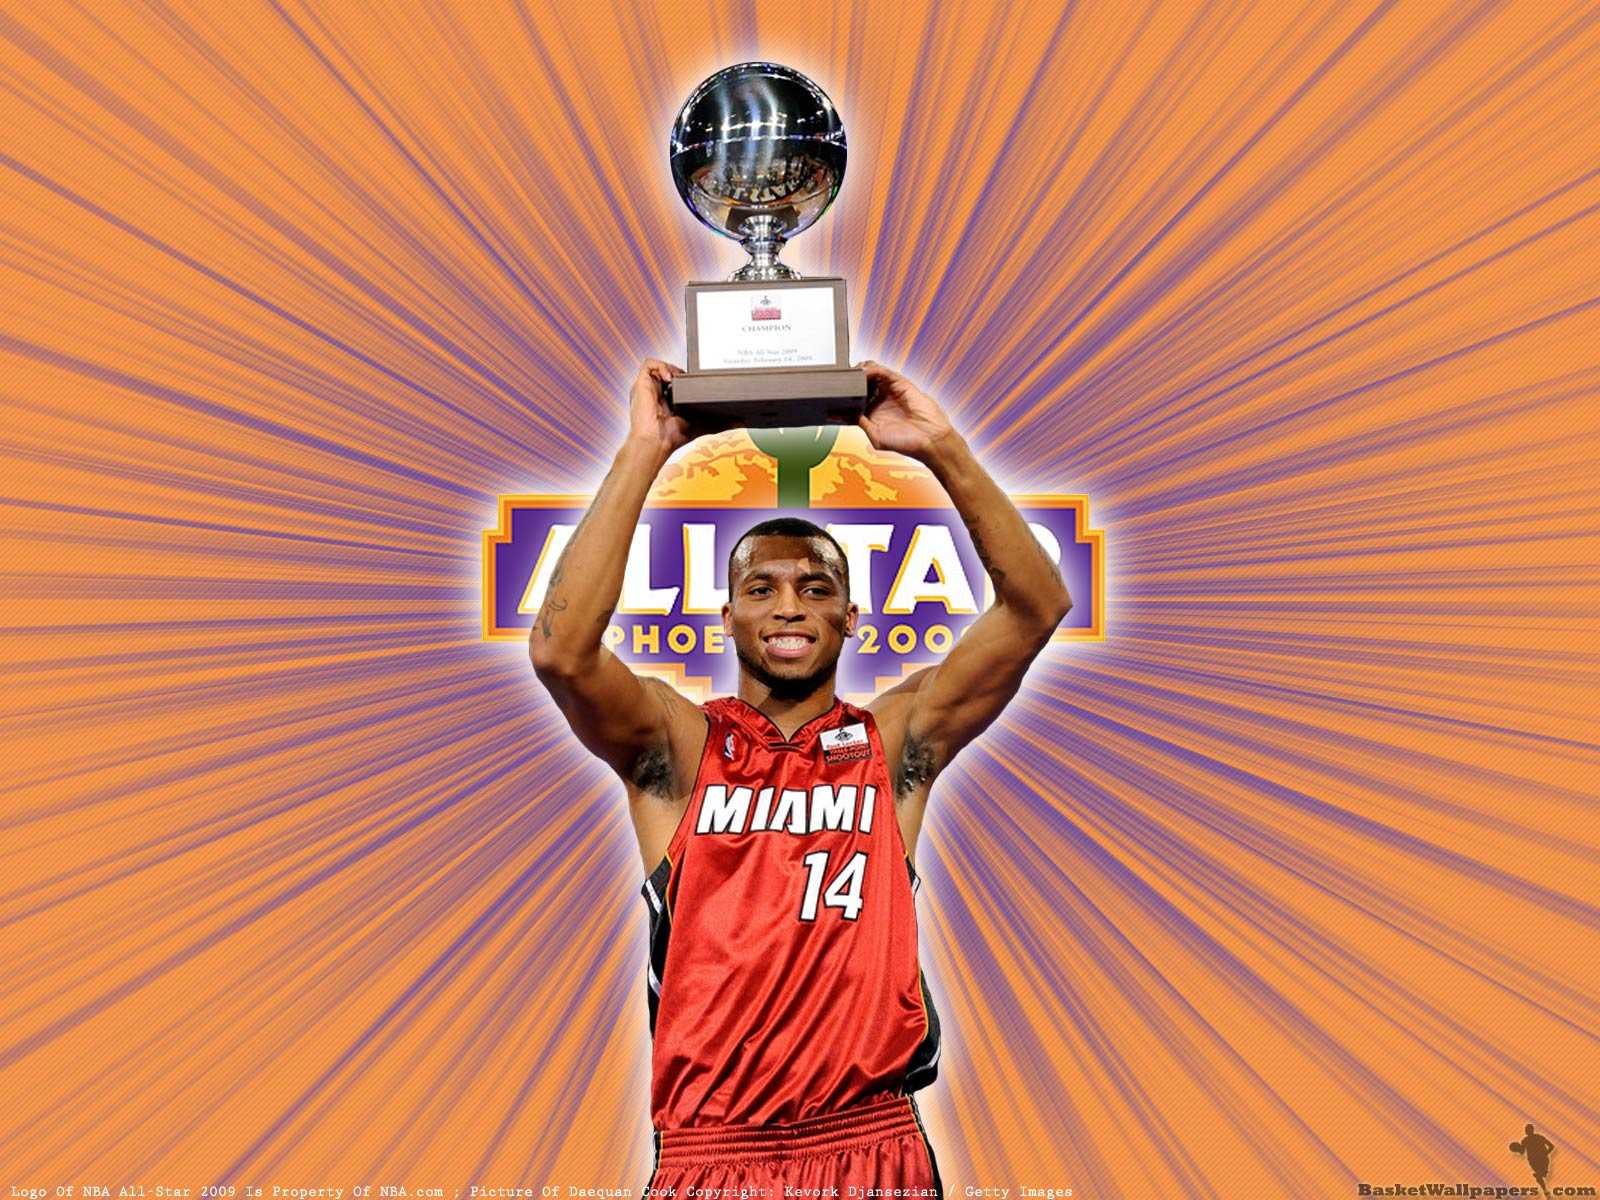 Nba Wallpaper Iphone Daequan Cook 3pts Champion 2009 Wallpaper Basketball